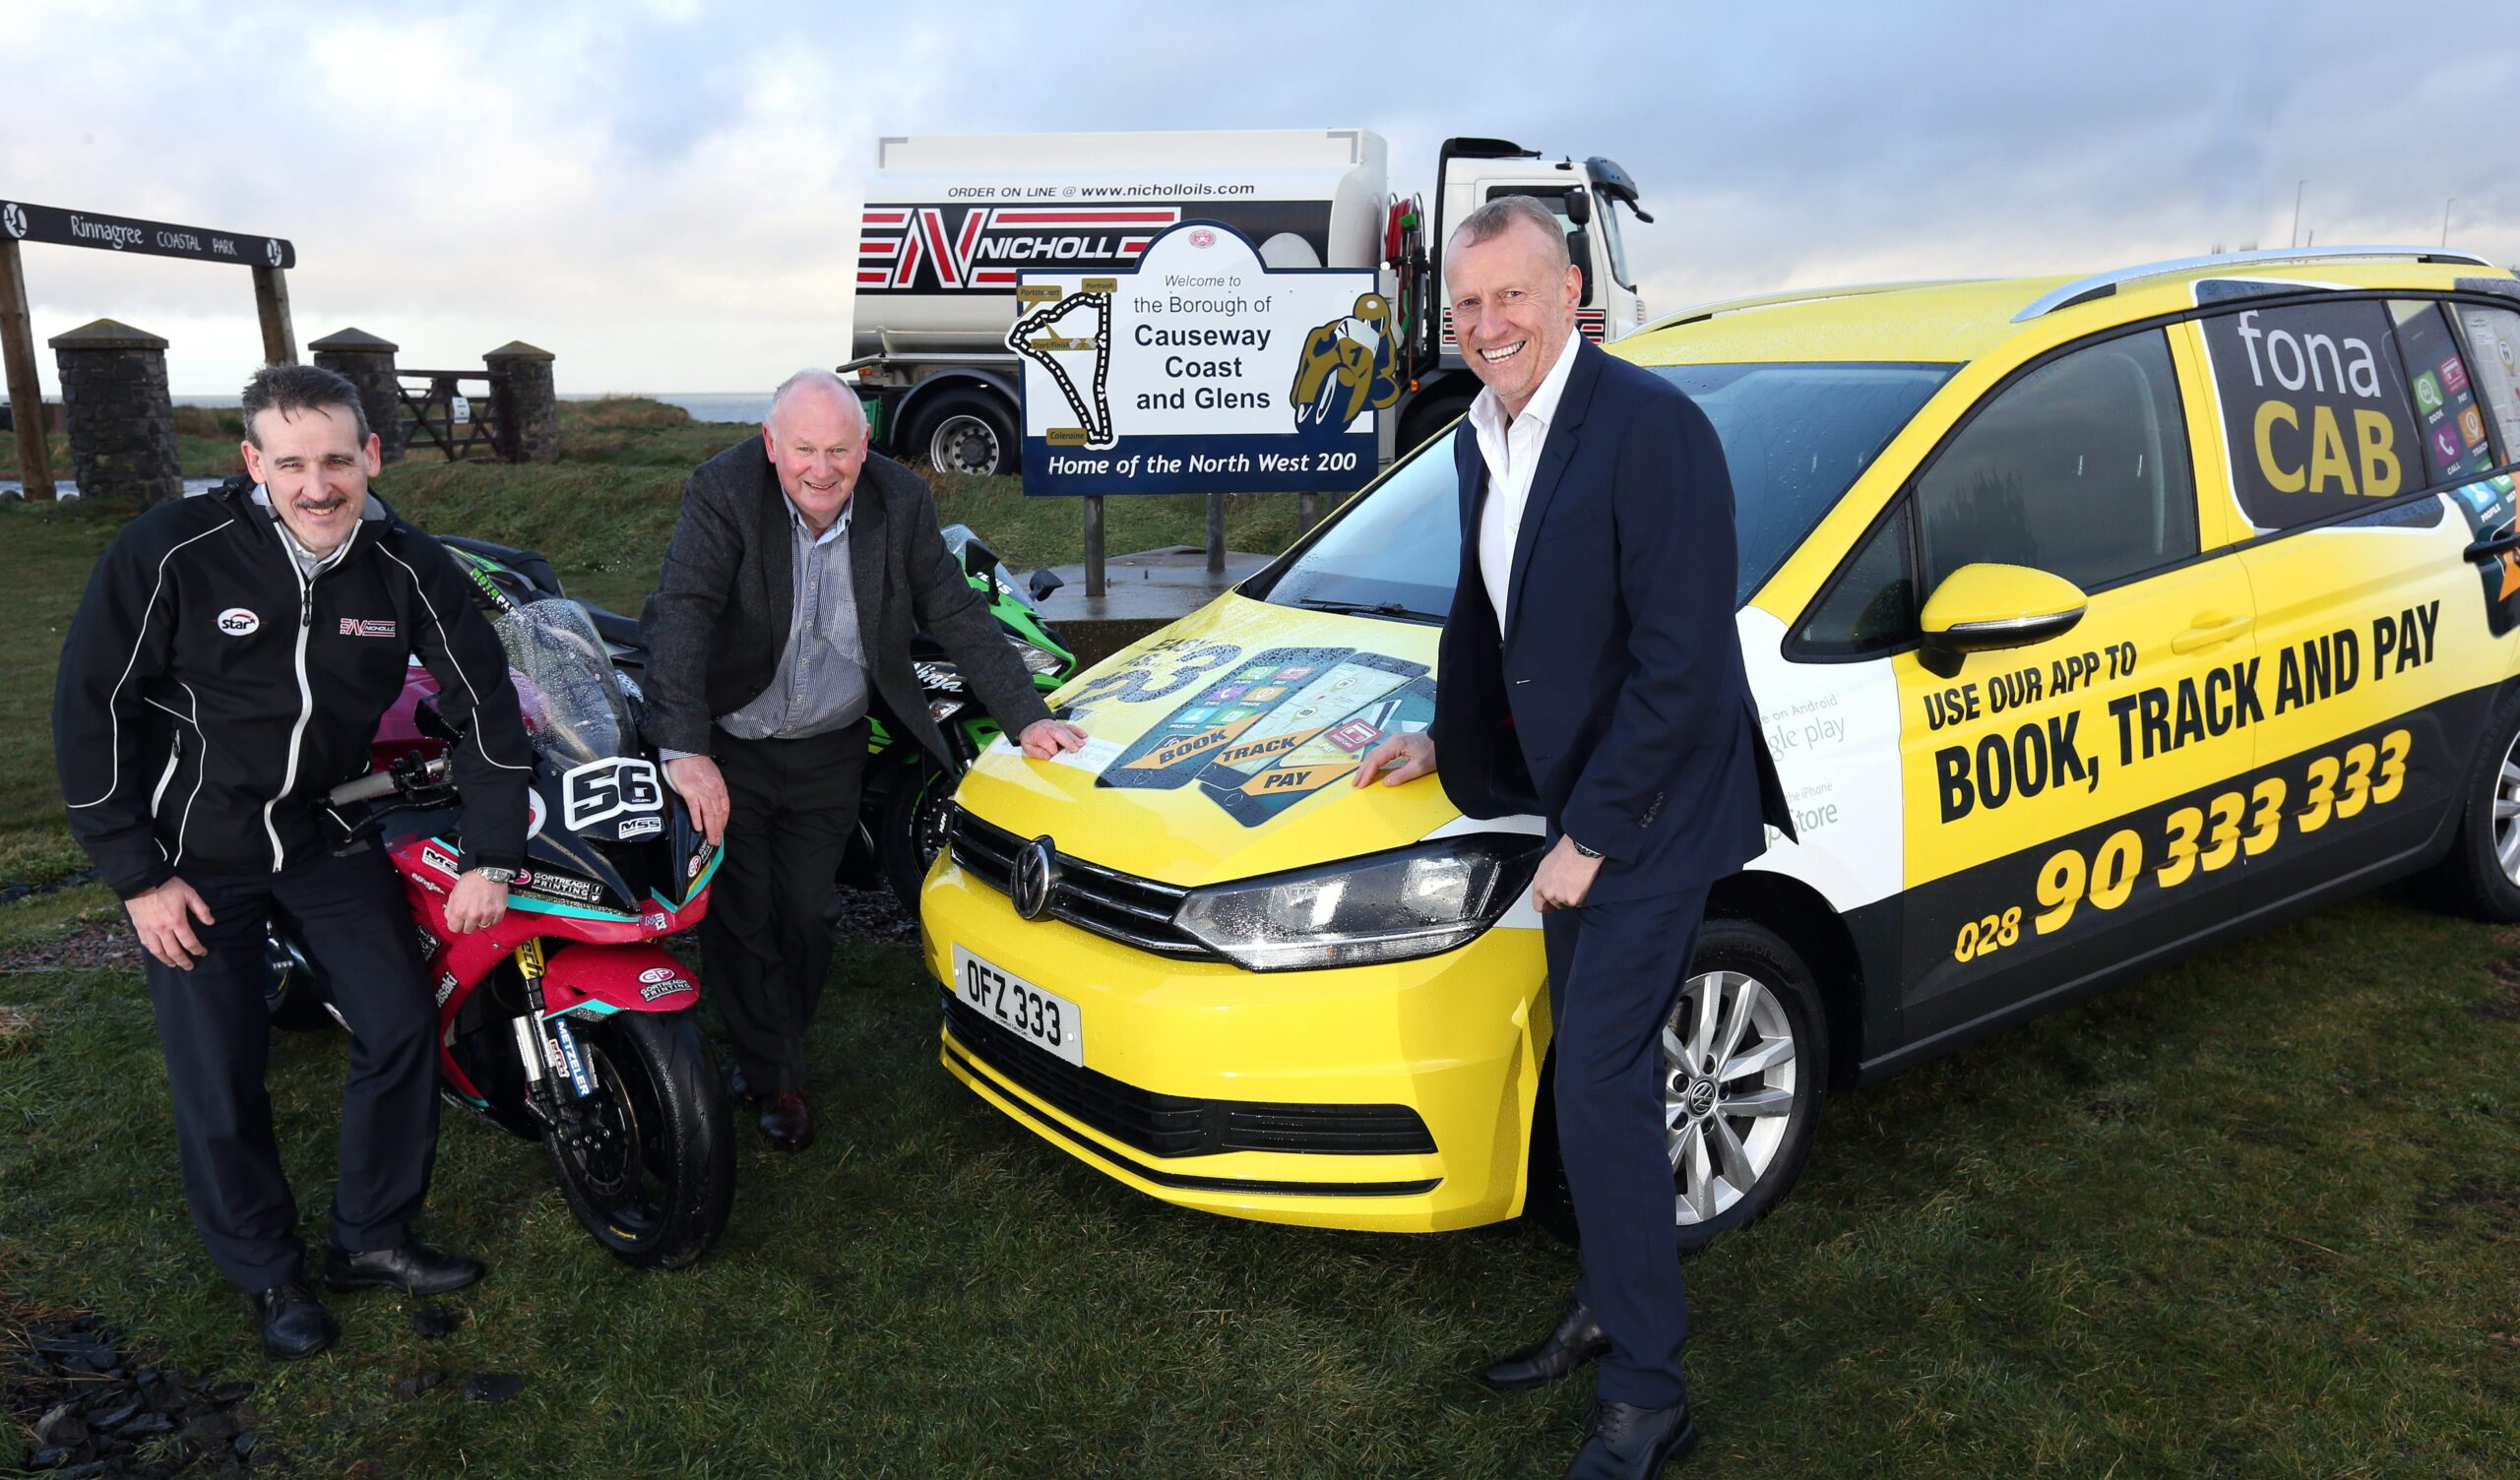 FonaCAB/Nicholl Oils Unveiled As New North West 200 Title Sponsors